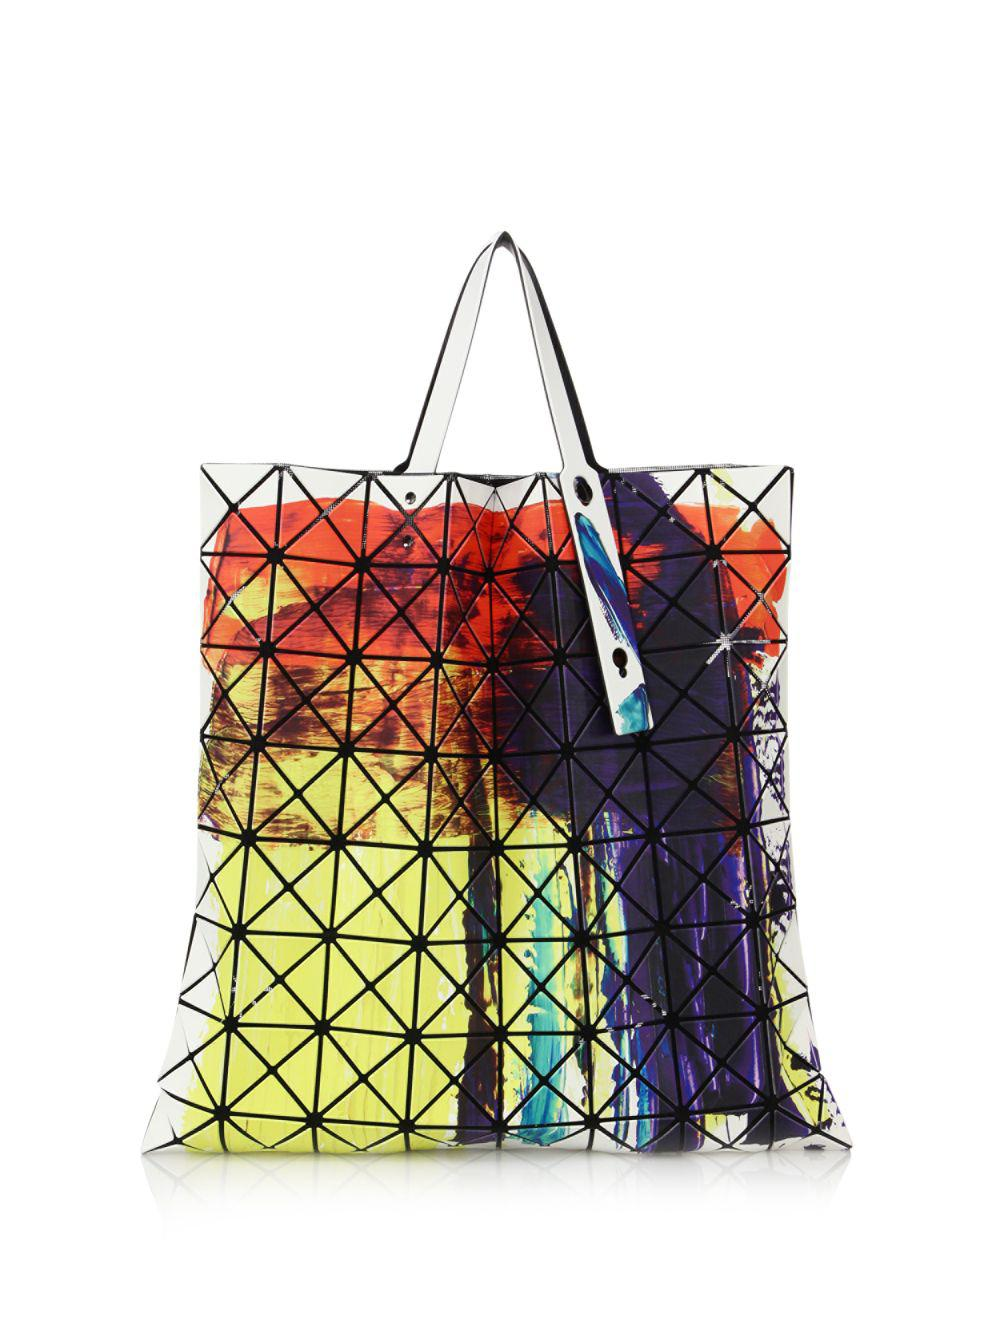 Lyst - Bao Bao Issey Miyake Soul Multicolor Tote - Save 40% f916937a38